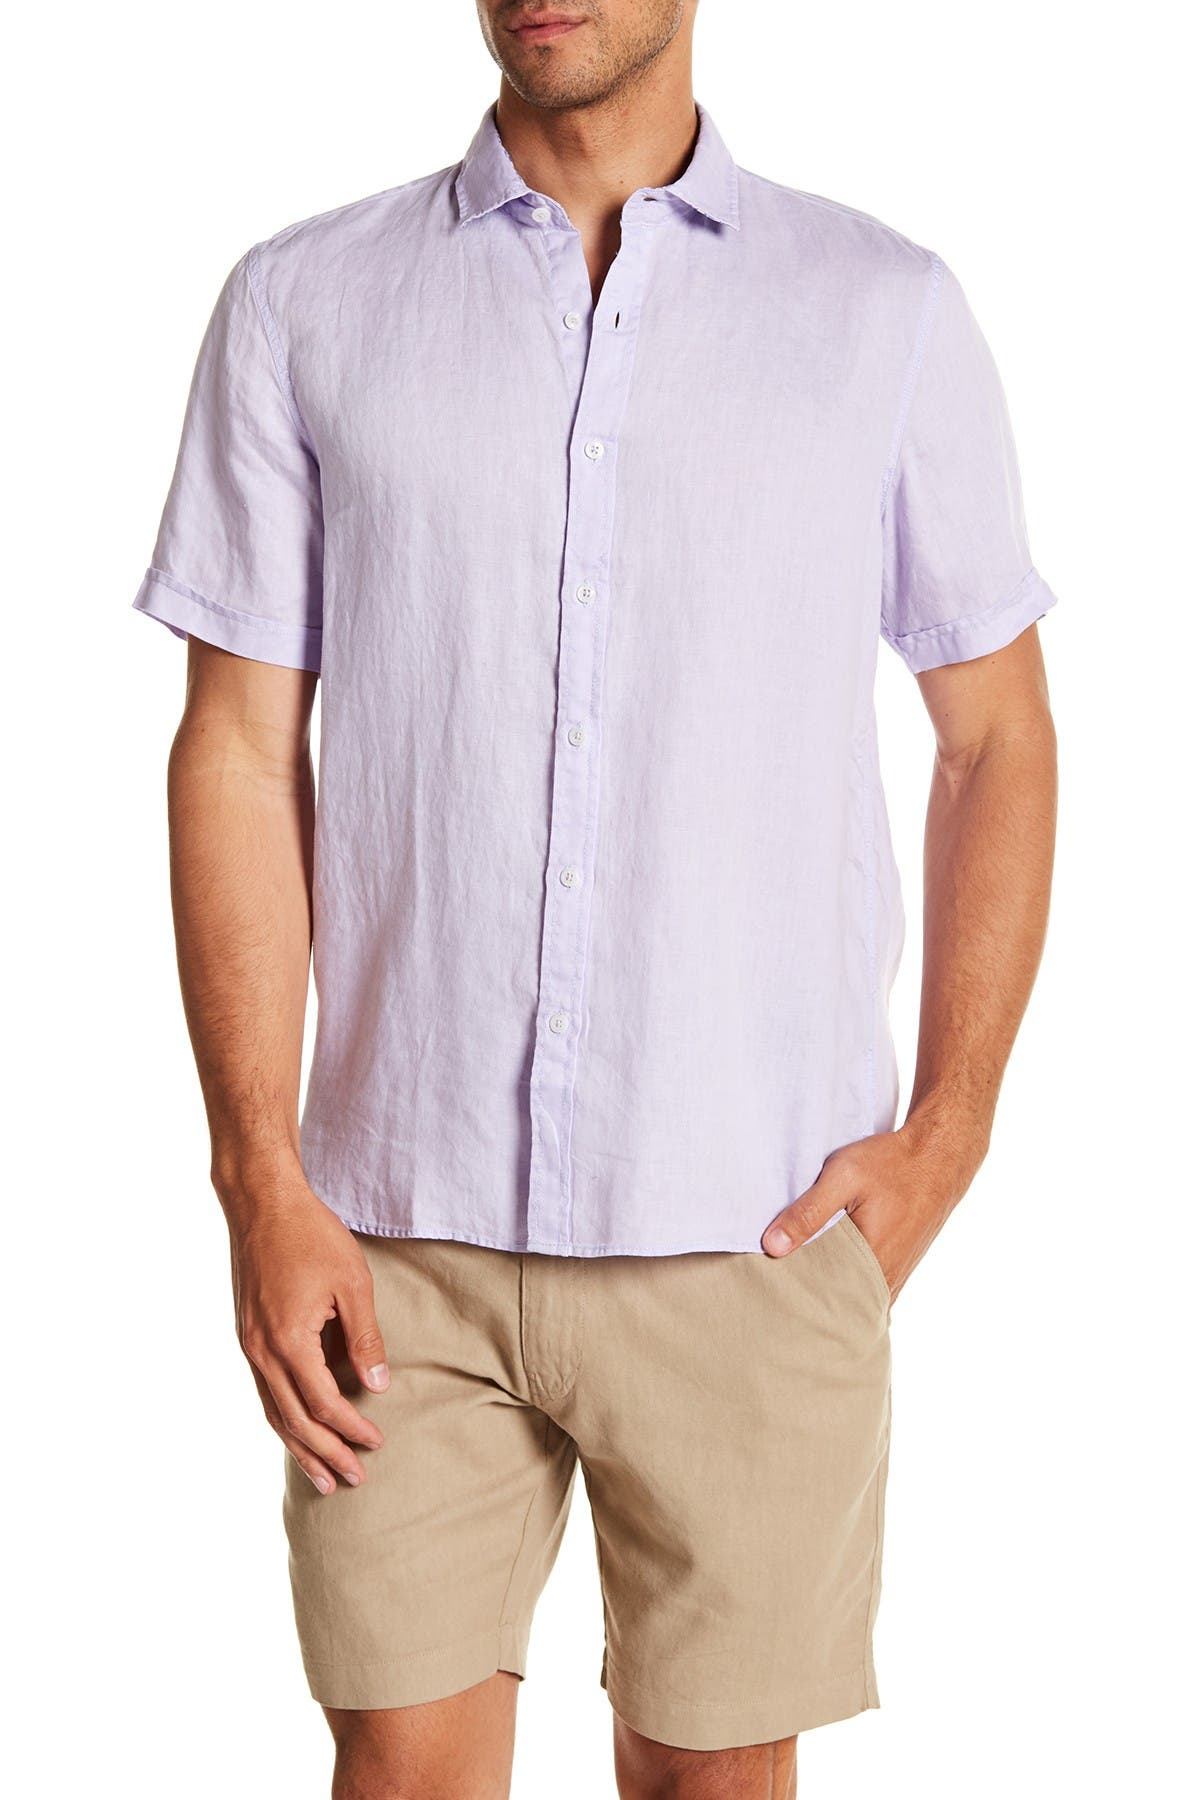 Image of Toscano Short Sleeve Solid Woven Shirt